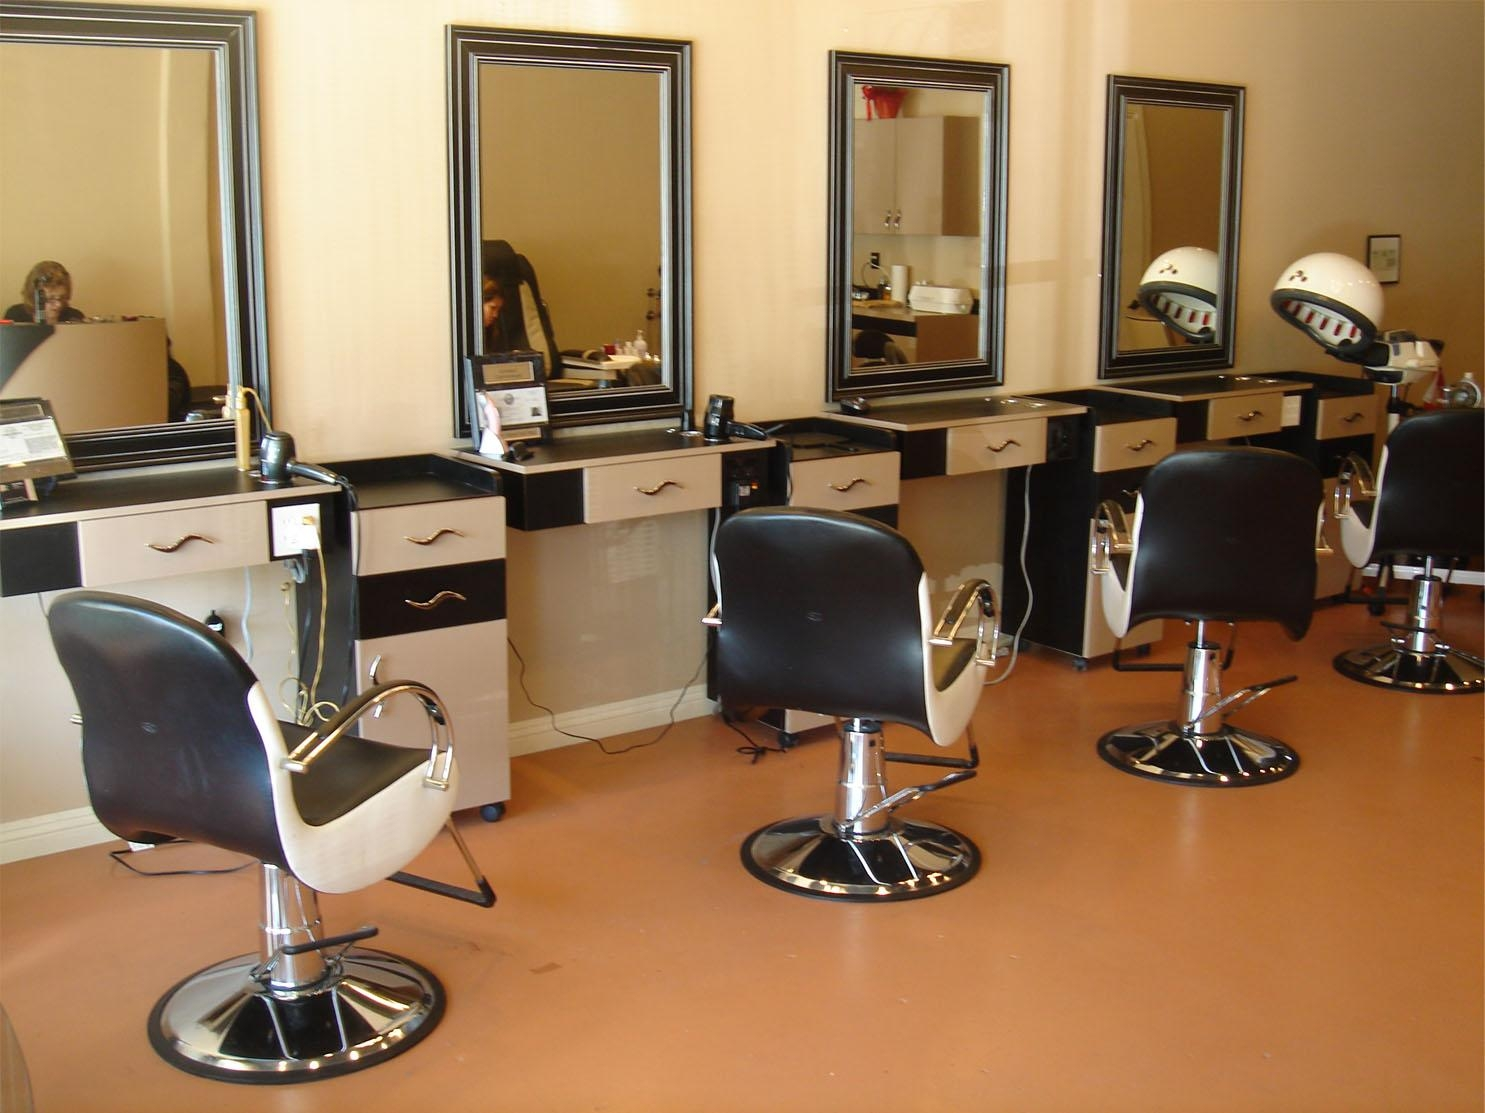 20 photos hairdressing mirrors for sale mirror ideas - Used salon furniture for sale ...